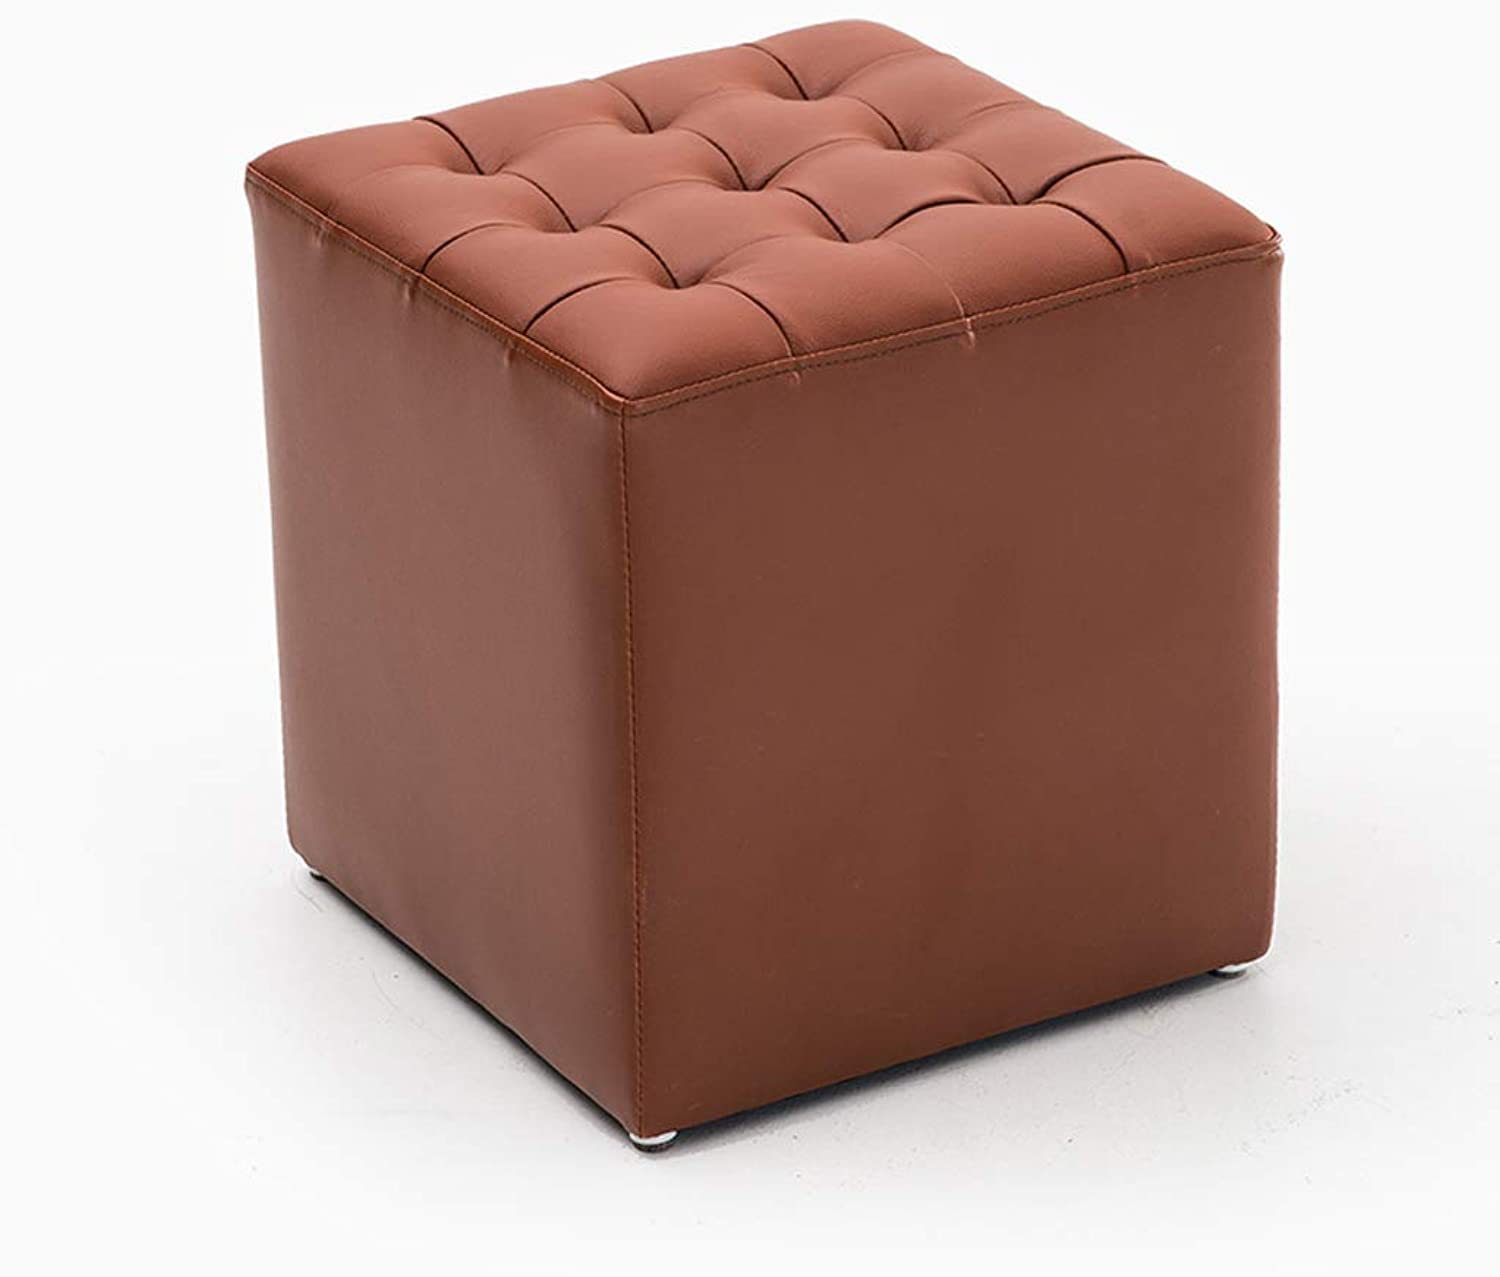 Footstool, Sofa Bench Thickening shoes Bench Makeup Stool Cushion Living Room Bedroom 4 colors (color   A)